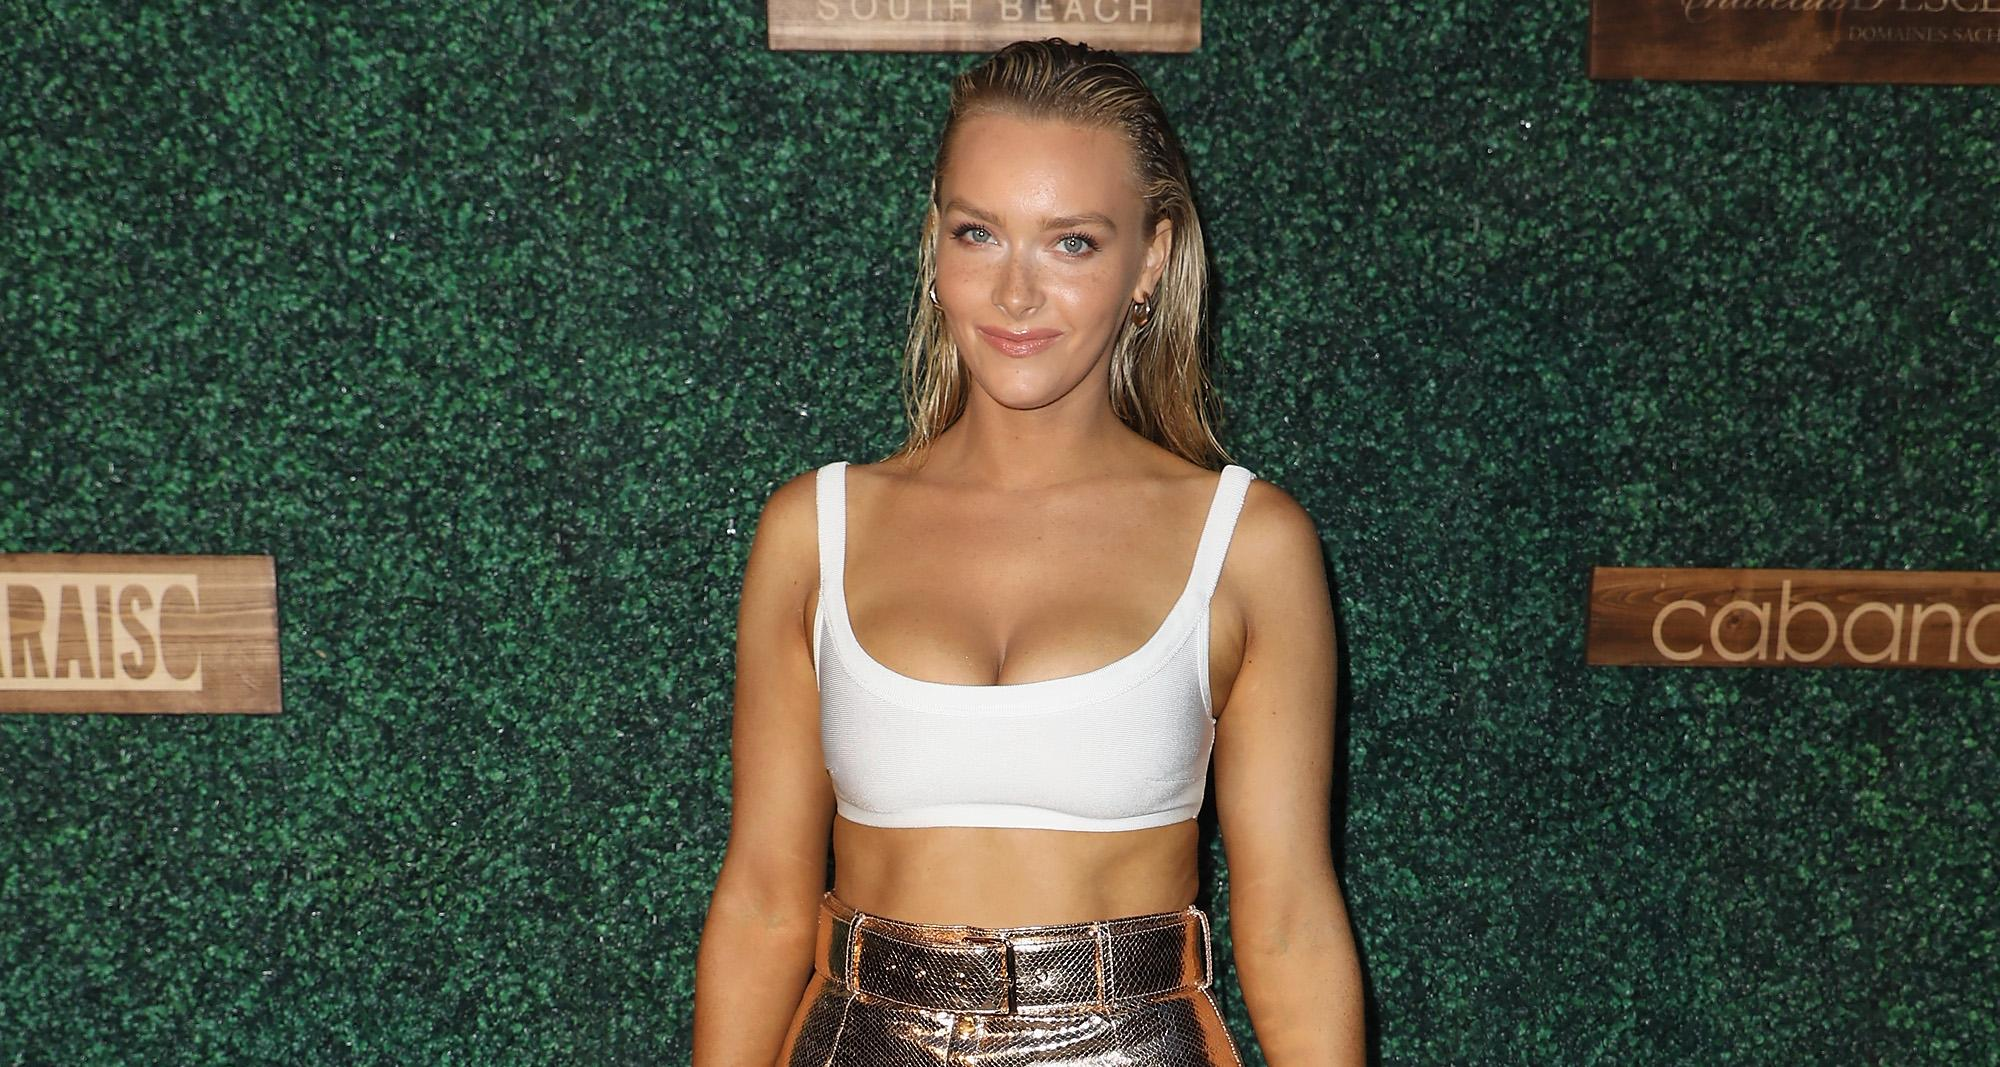 Camille Kostek attends the 2018 Sports Illustrated Swimsuit show at PARAISO during Miami Swim Week at The W Hotel South Beach